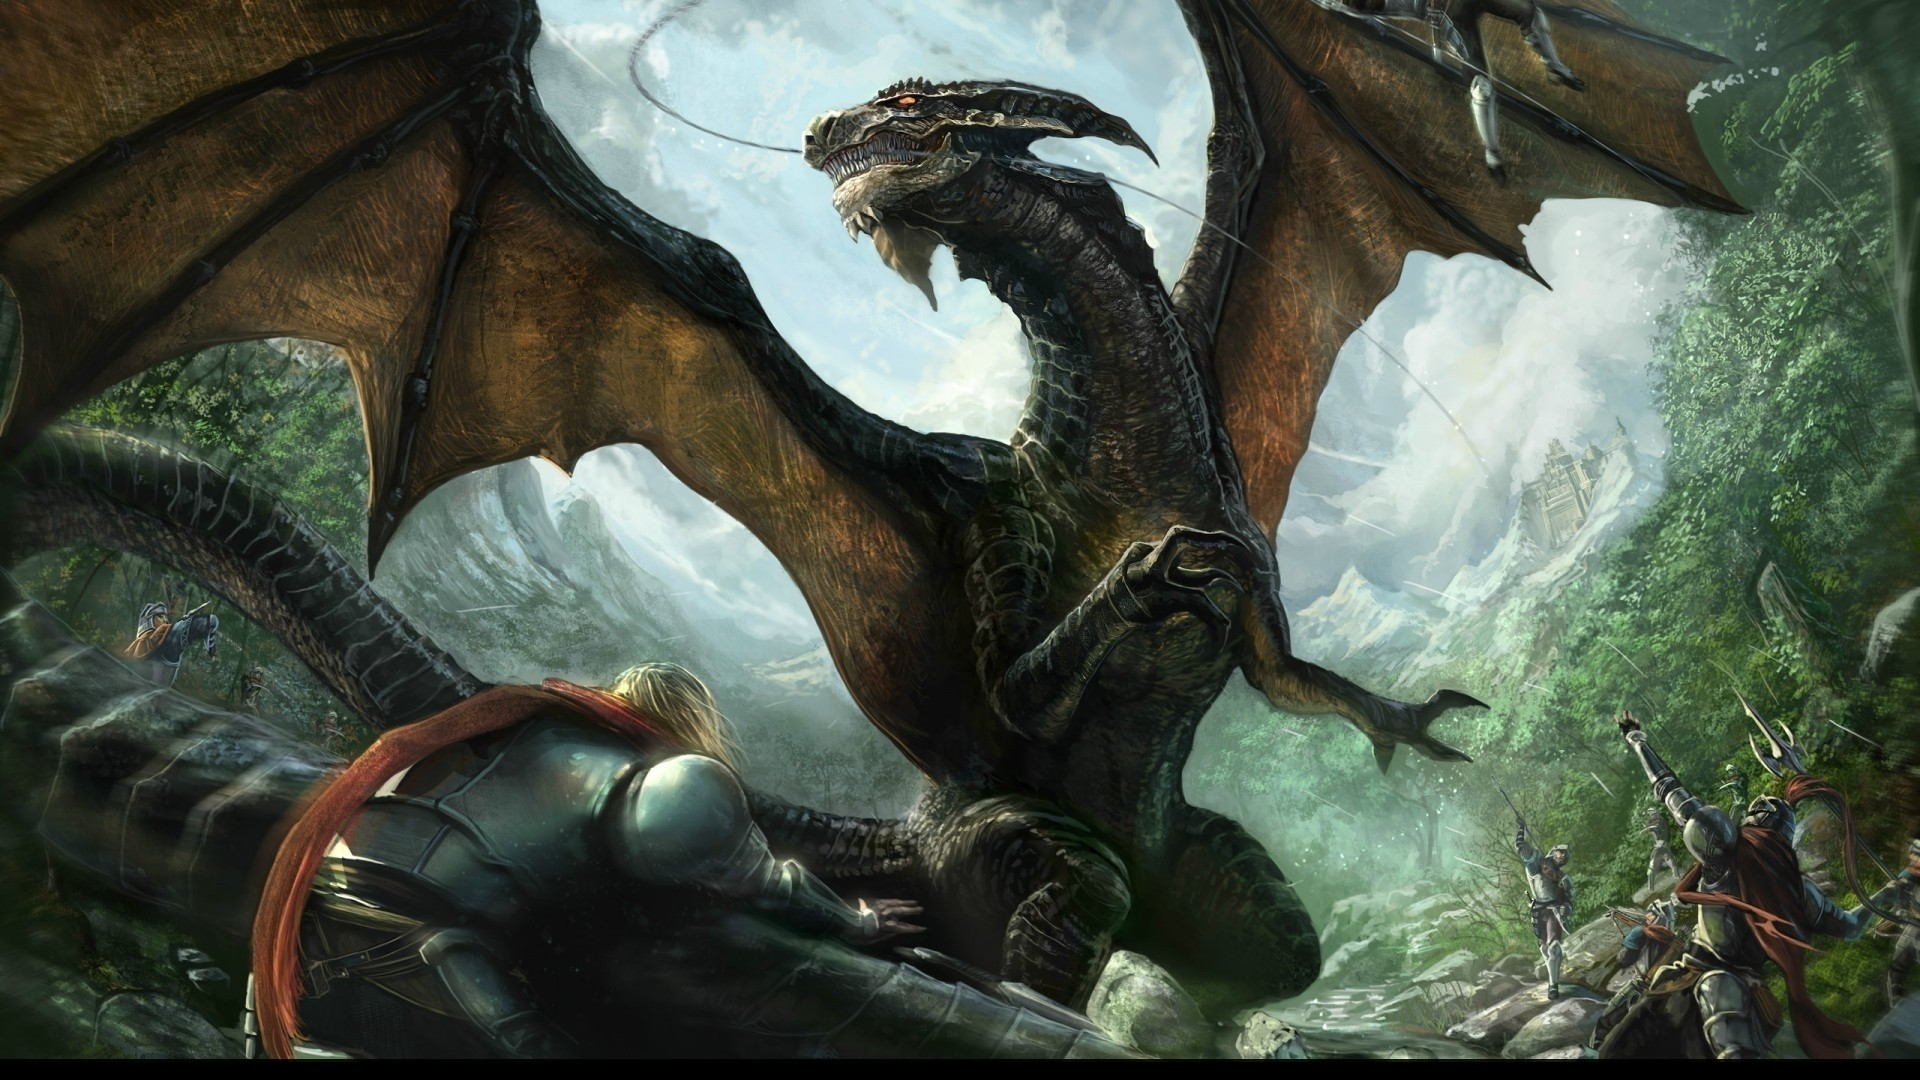 1920x1080 Dragon Desktop Background